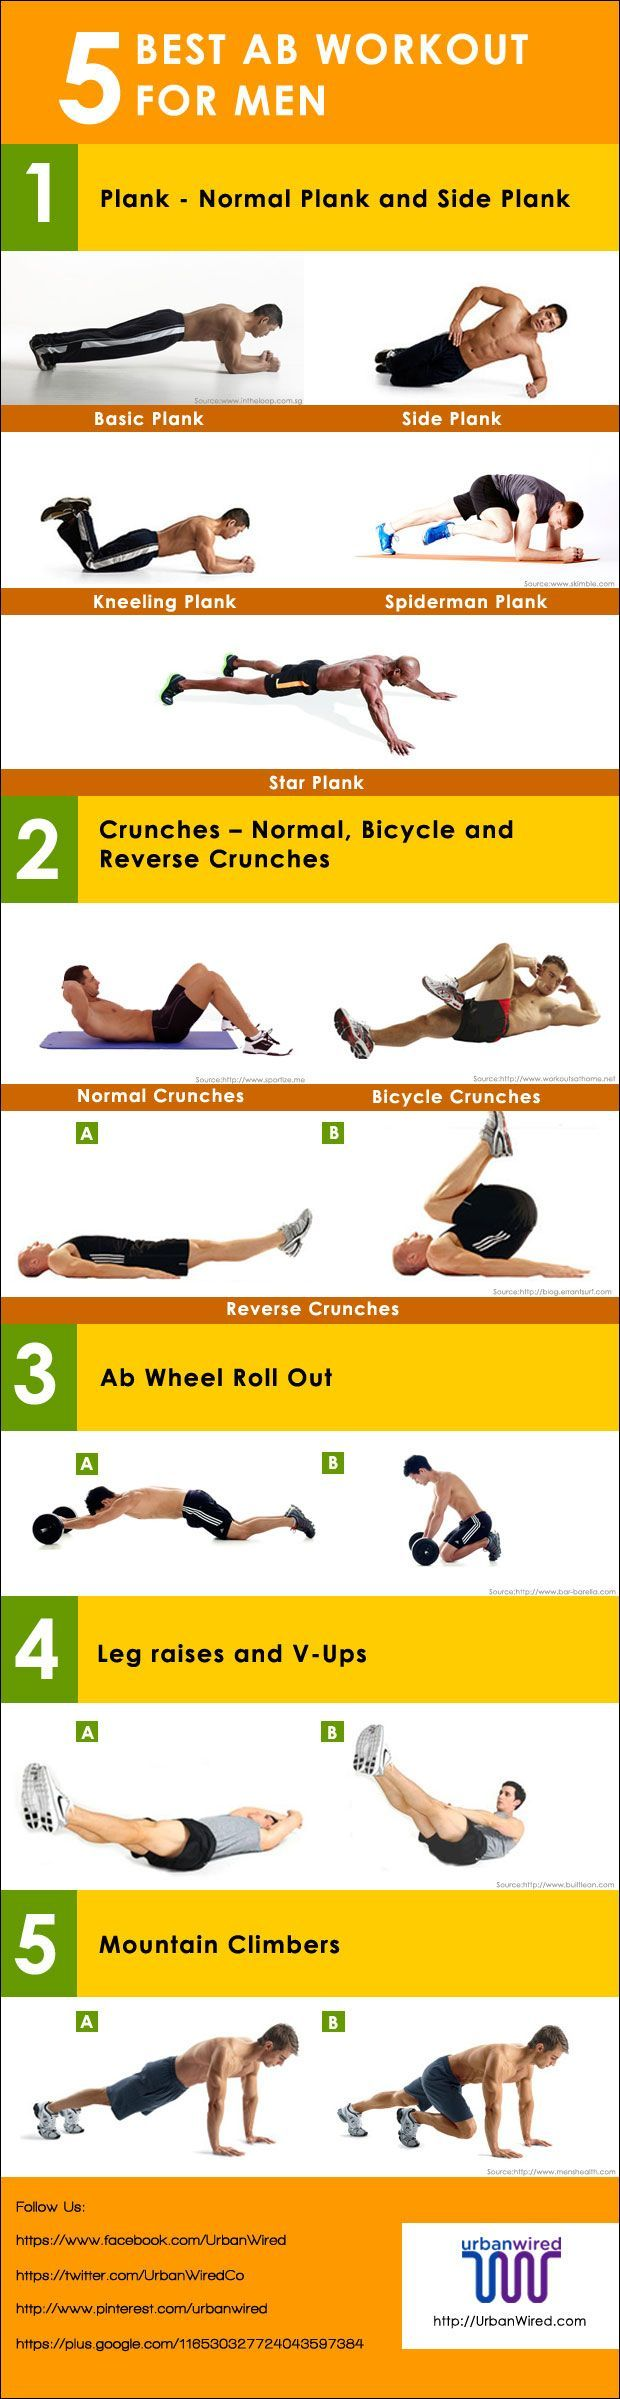 It is extremely desirable to have a good looking physique. So here are the top 5 best ab workouts for men.